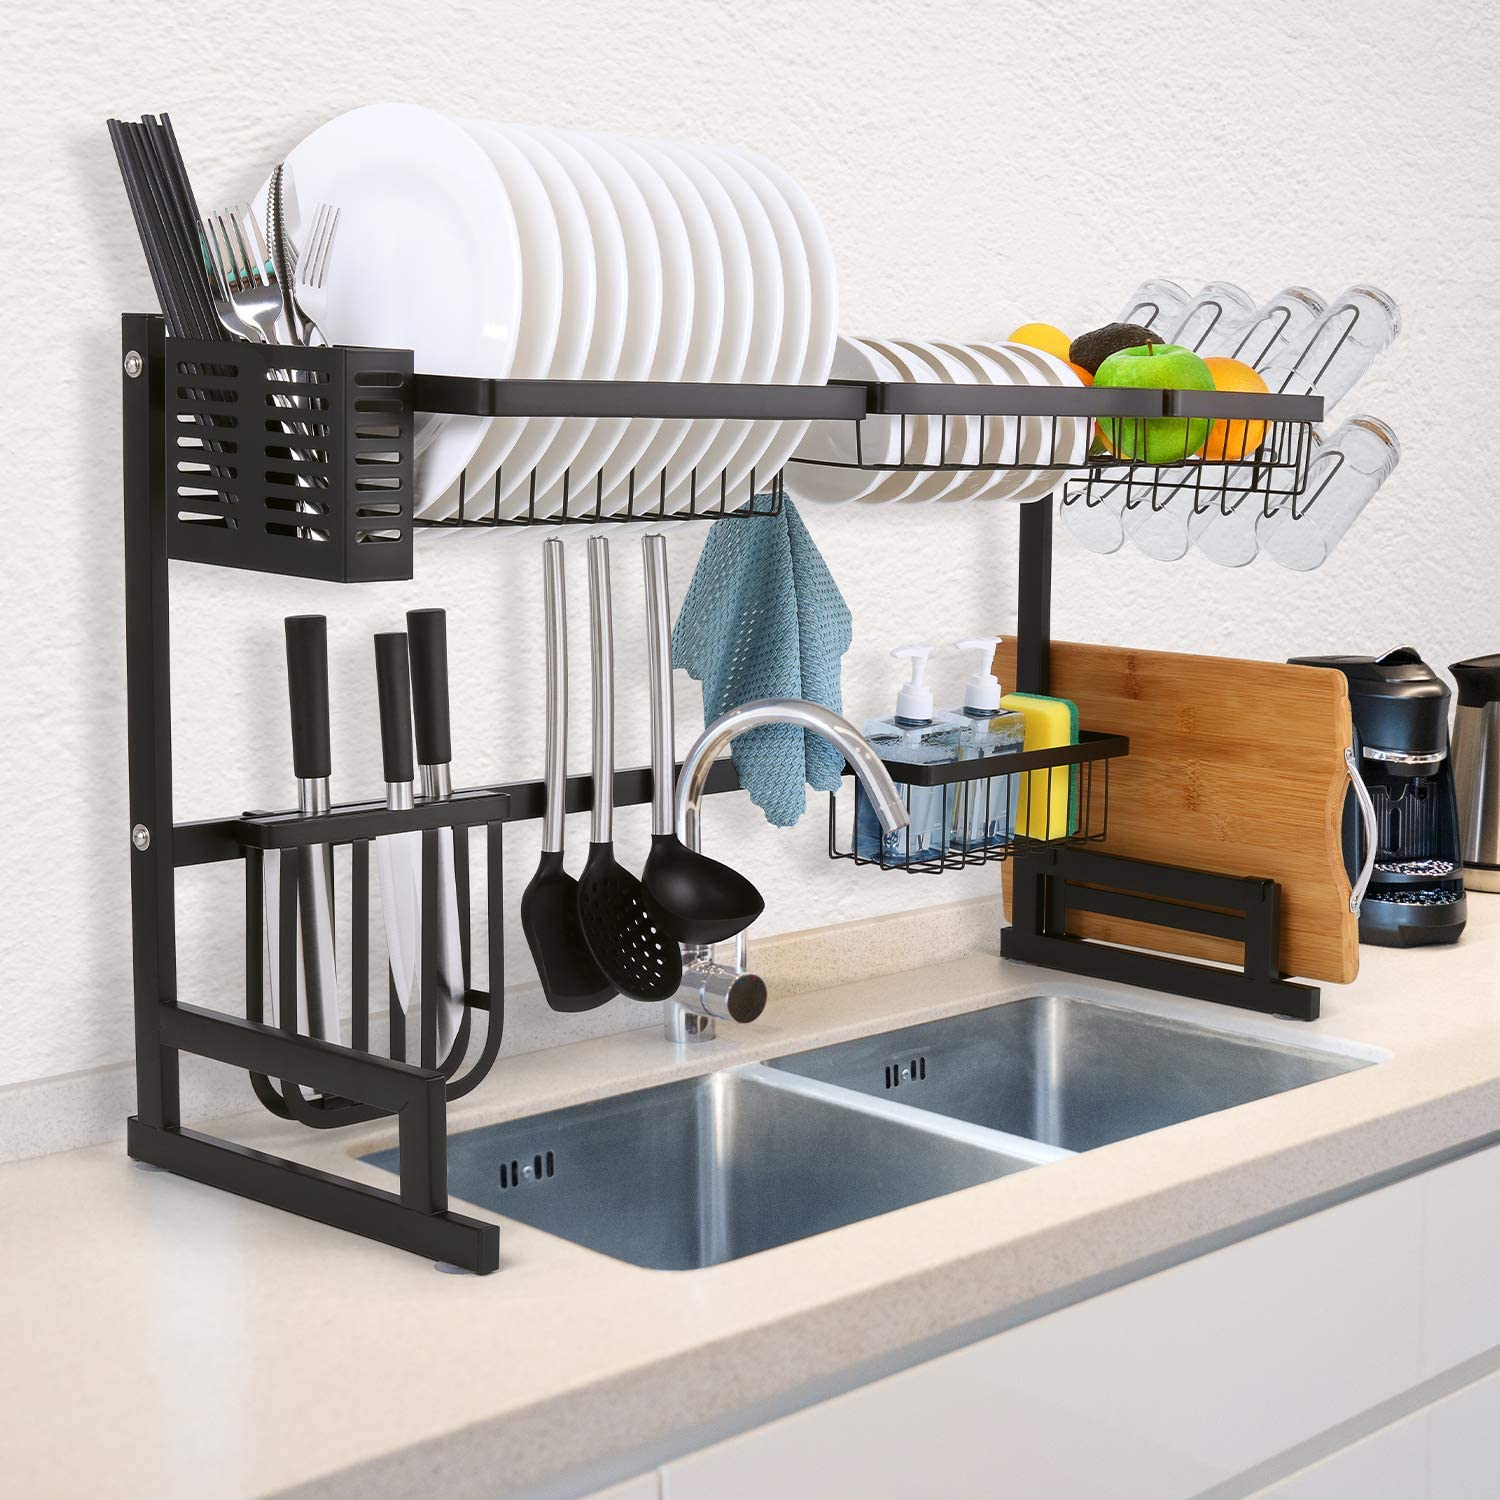 Over the Sink Dish Rack - Black (31.1